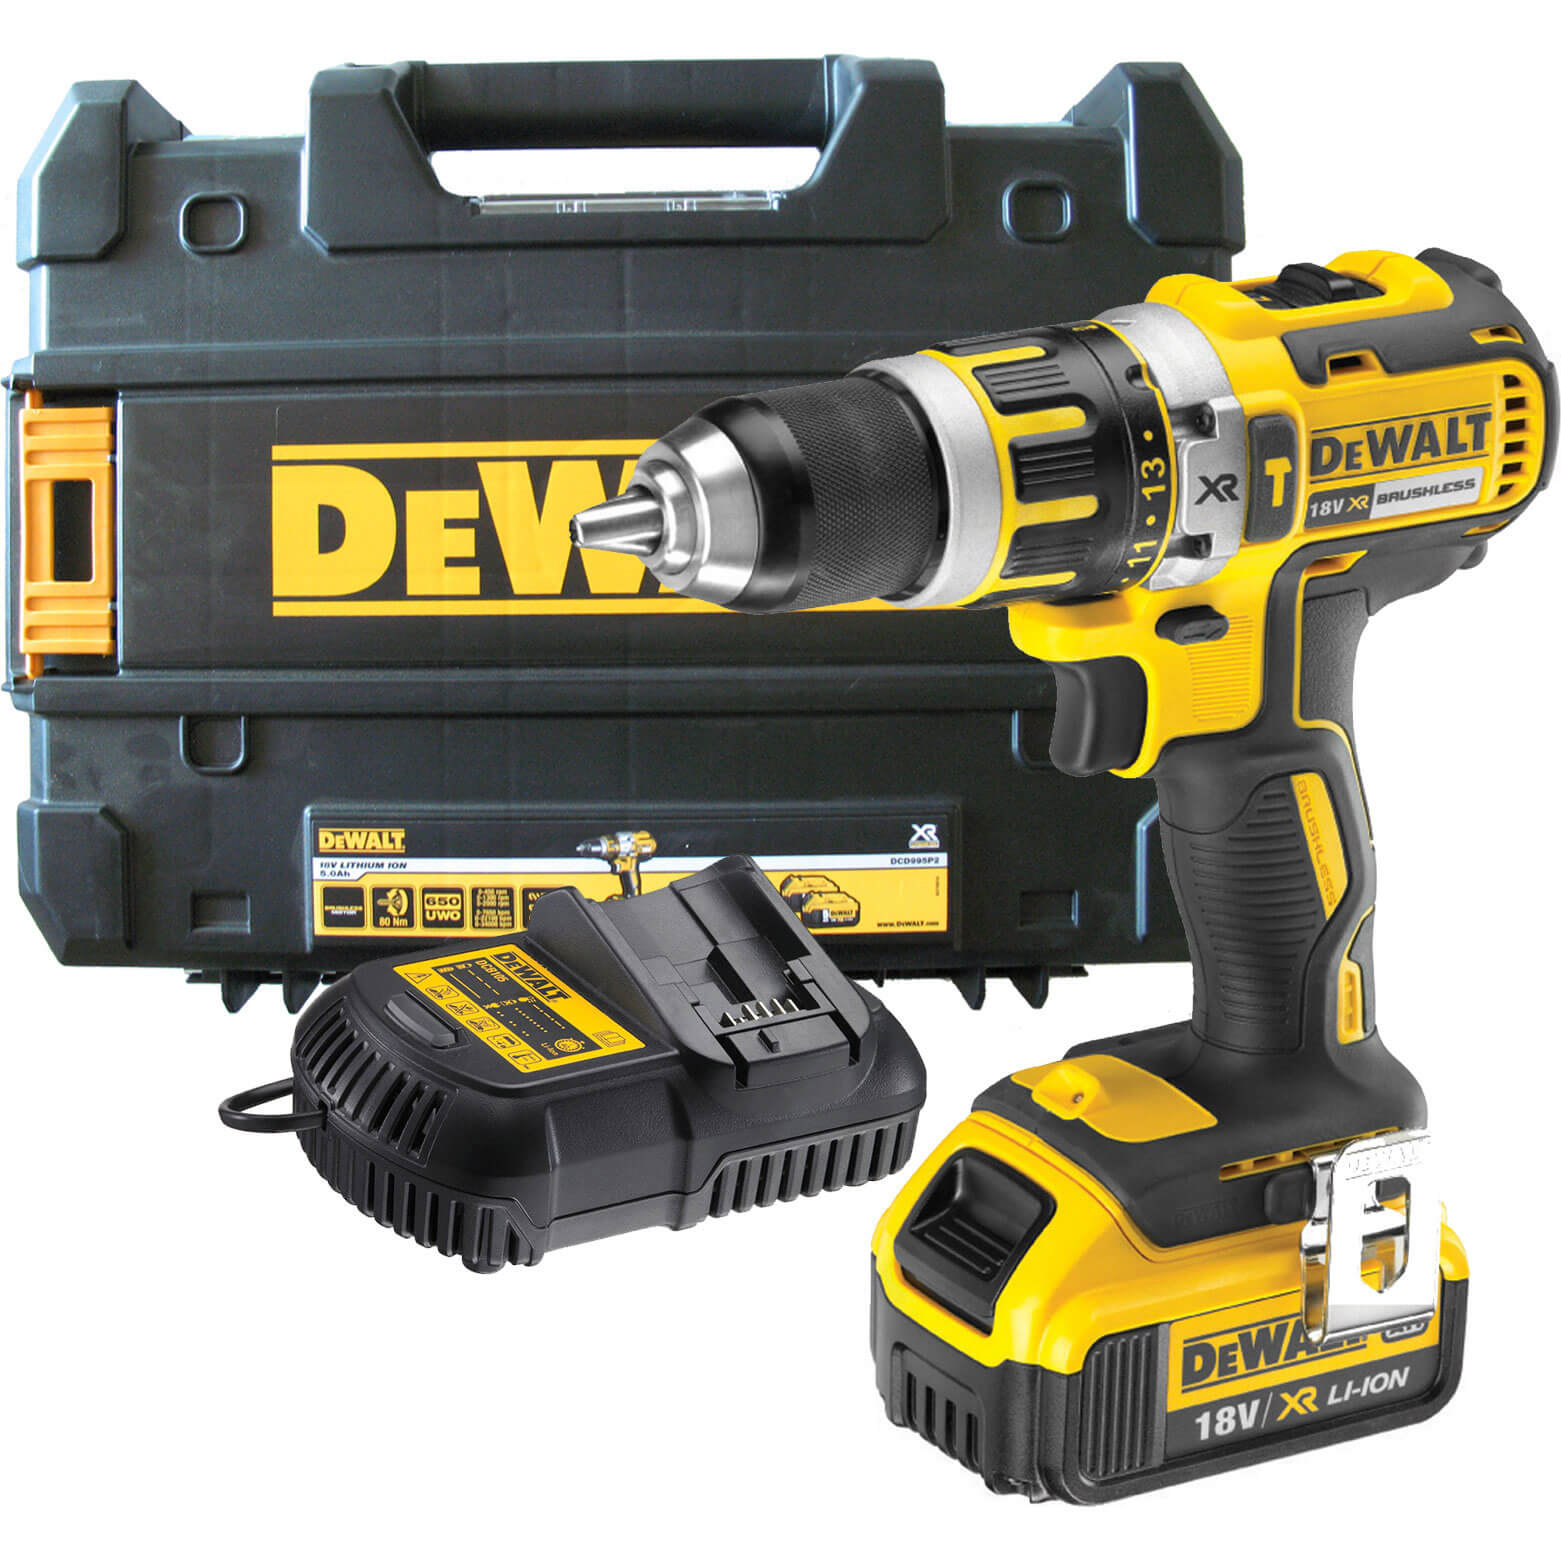 DeWalt DCD795M1 18v Brushless Cordless XR Compact 2 Speed Combi Drill with 1 Liion Battery 4ah